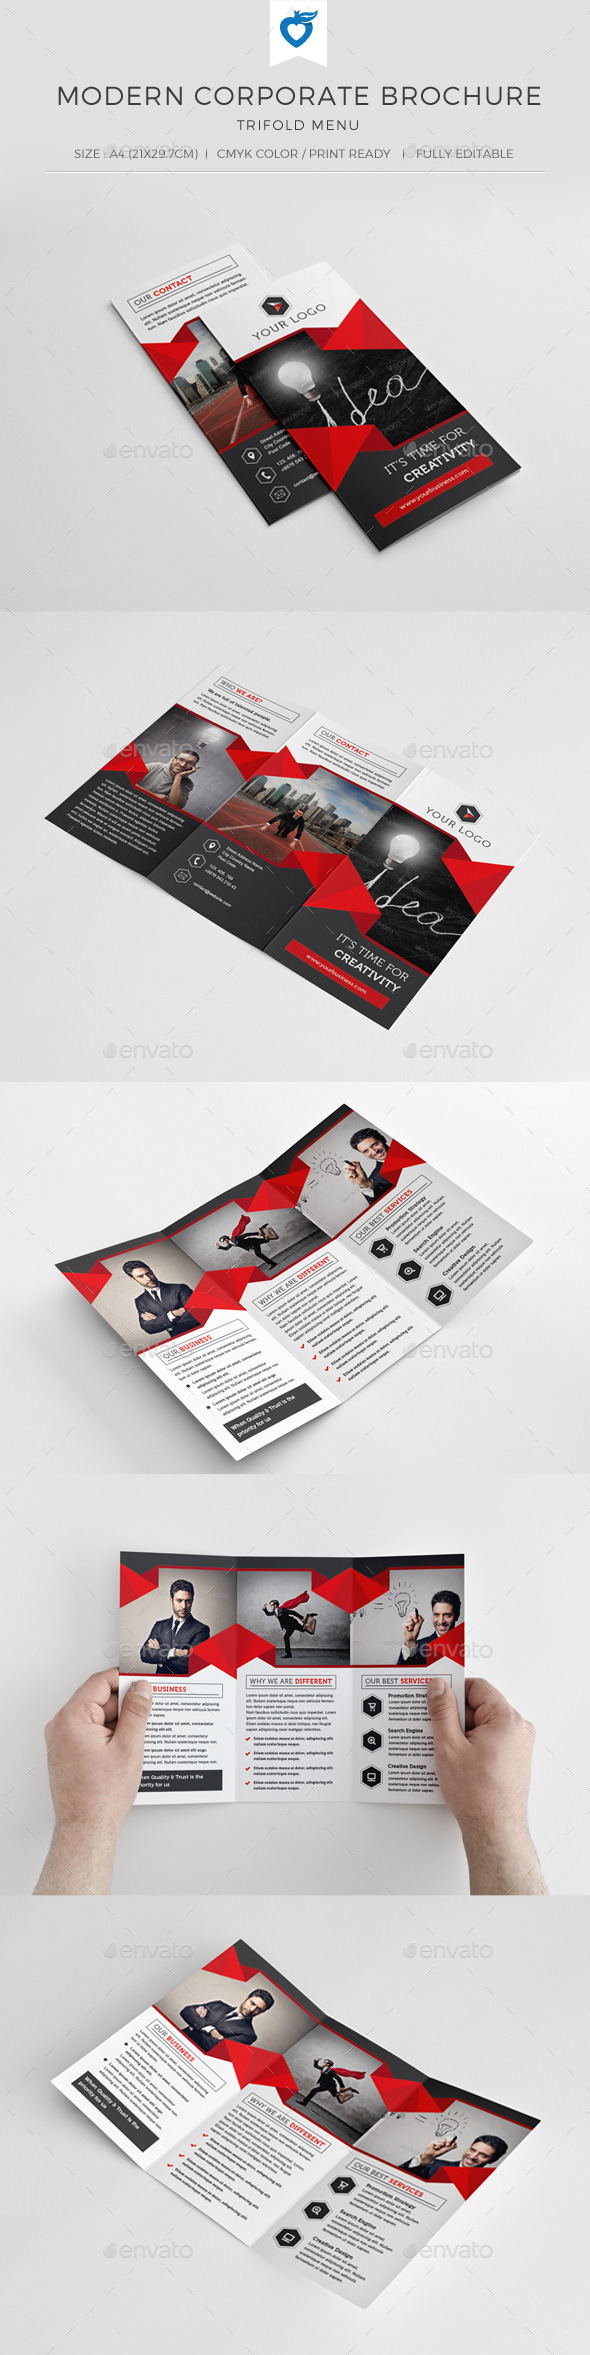 GraphicRiver Modern Corporate Trifold Brochure 10818146